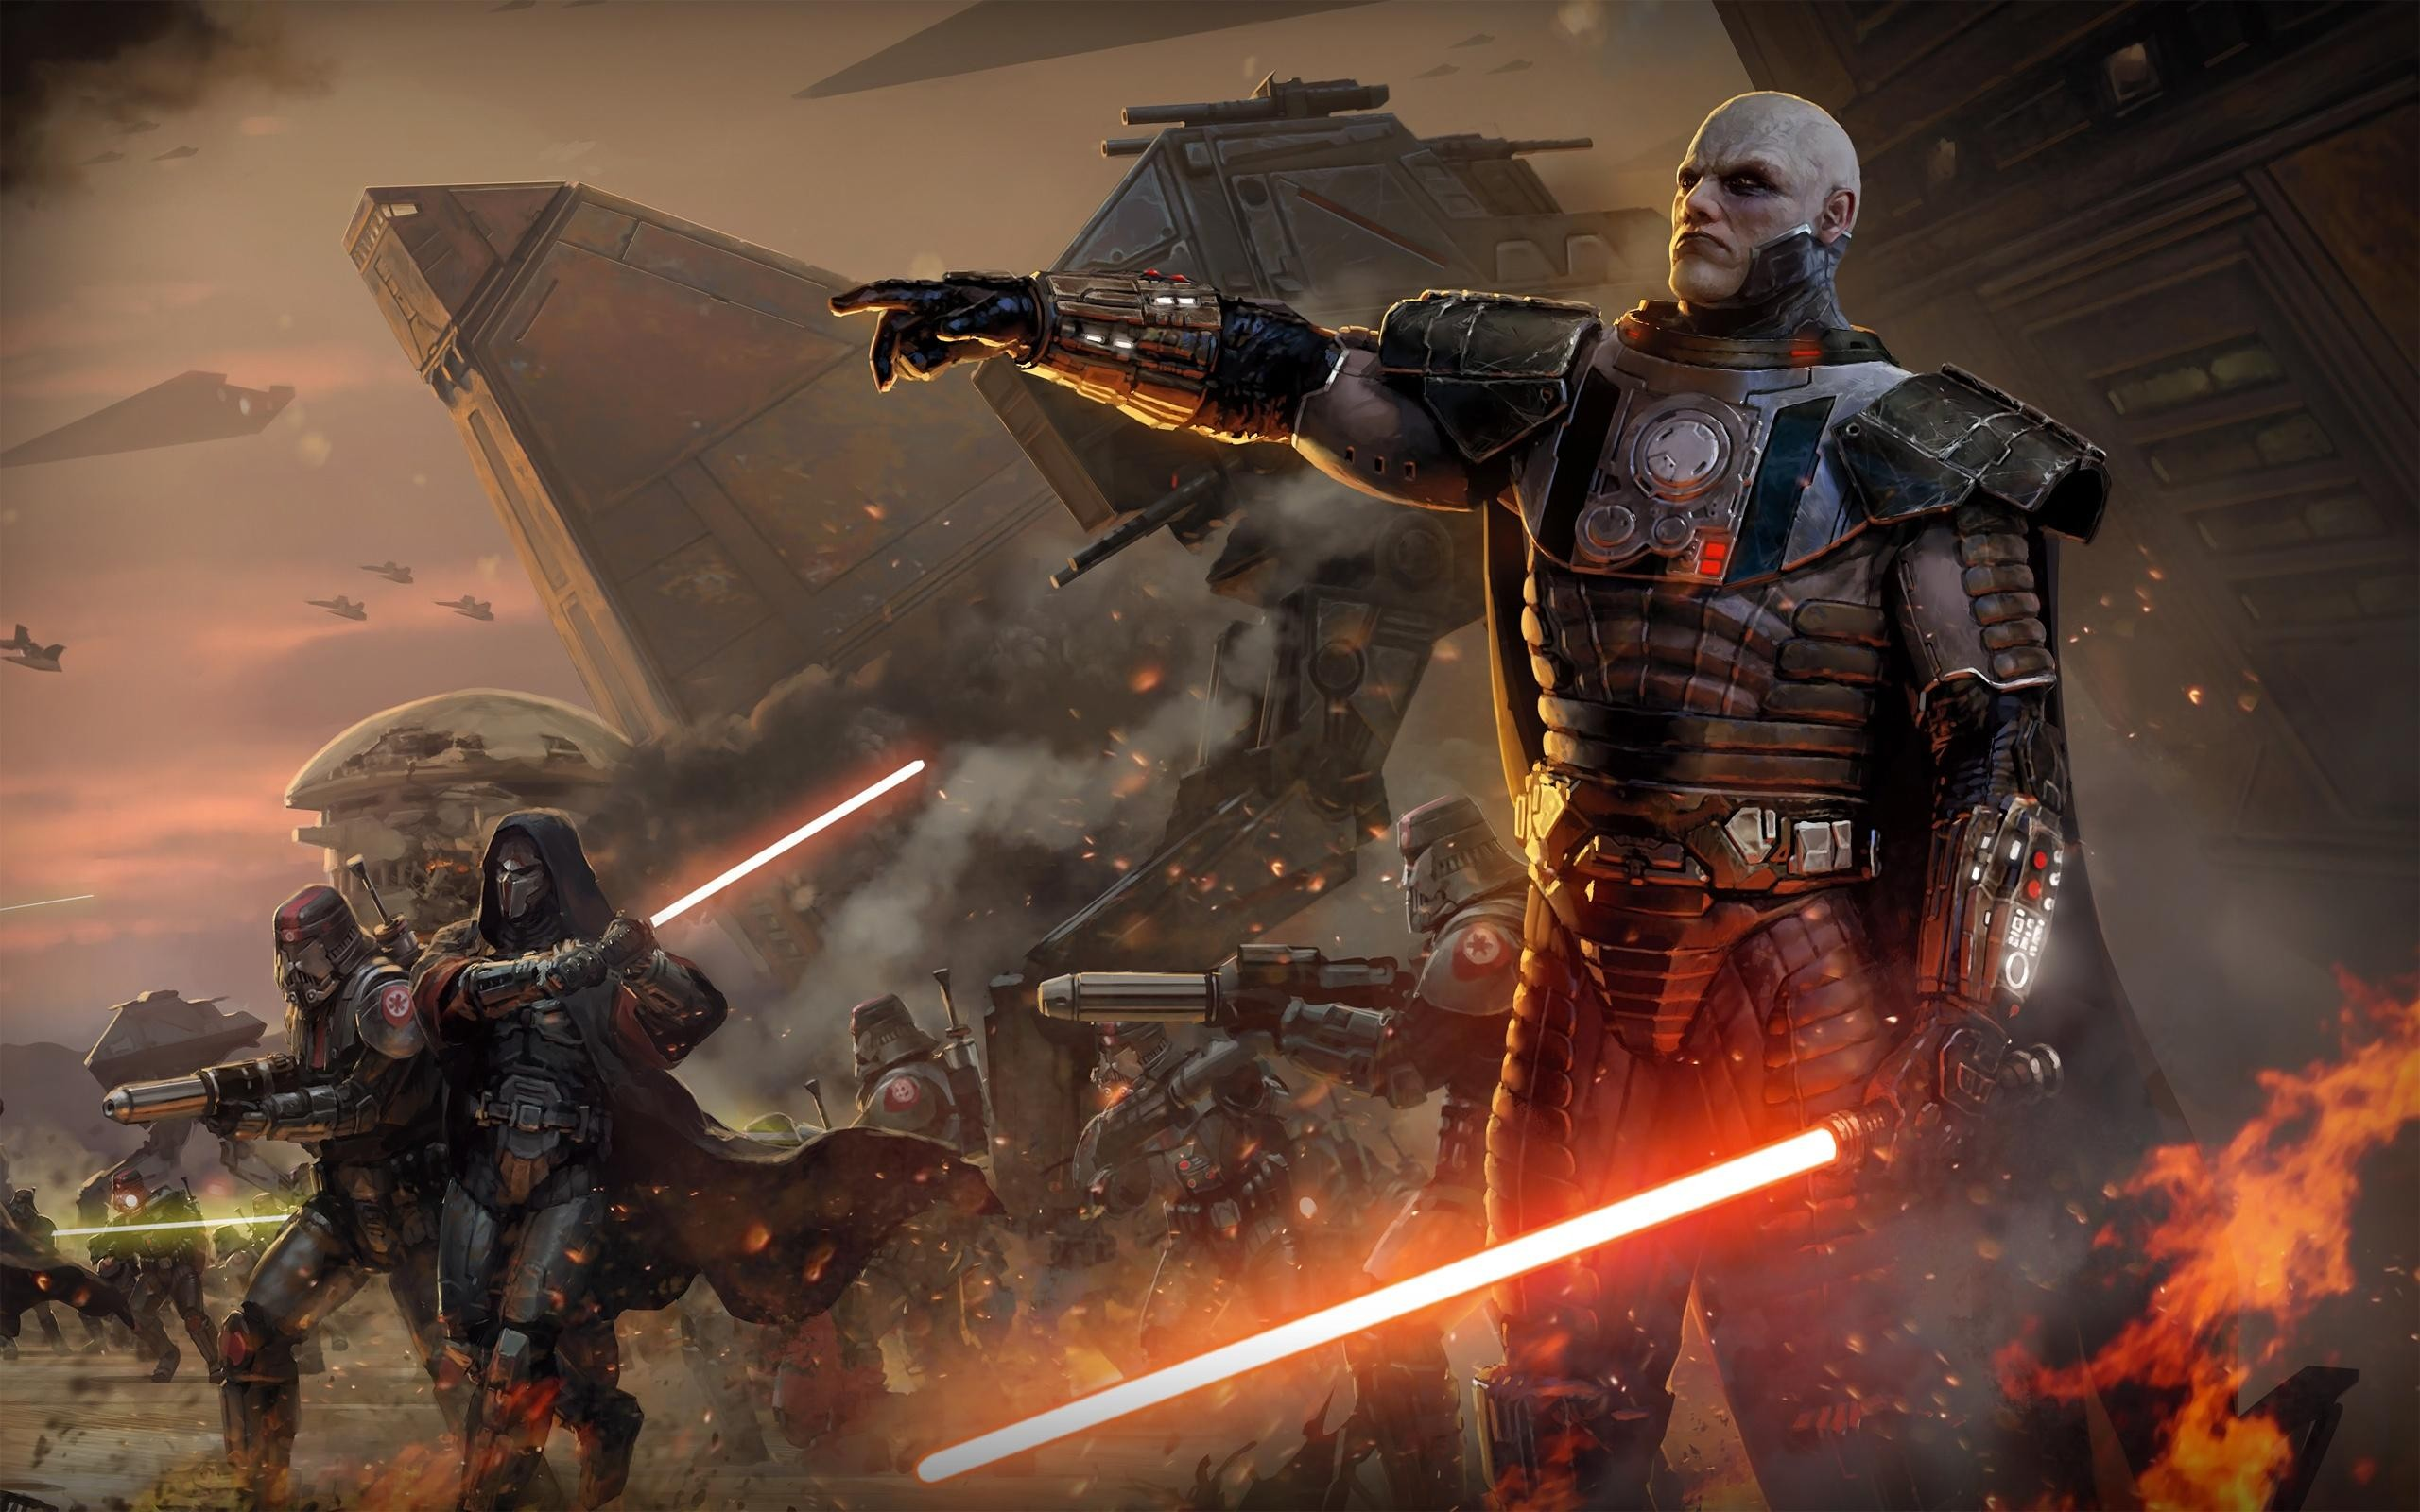 General 2560x1600 Star Wars Star Wars: The Old Republic lightsaber video games